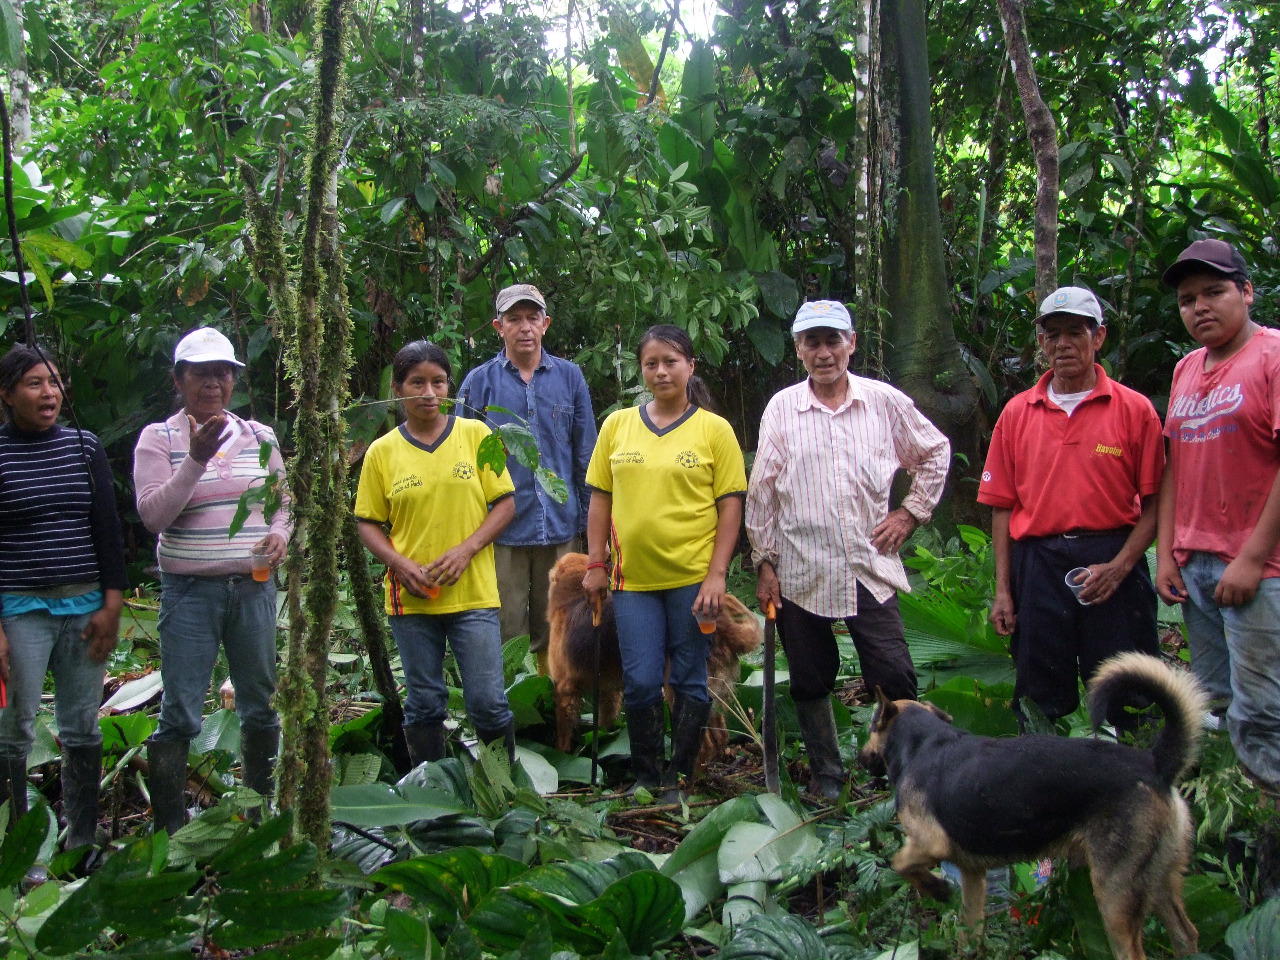 The Tribe - Tsatsayaku is made up of 140 Kichwa and mestizo families from 13 different communities, and its mission is to produce and conserve ancestral cacao (Arriba Nacional / Fino de Aroma) that provides a fair price for its members. The cacao itself is grown in the traditional Kichwa farming method 'Chakra', which has a conscientious respect for the natural environment. The organic approach seeks to preserve biodiversity and natural resources.